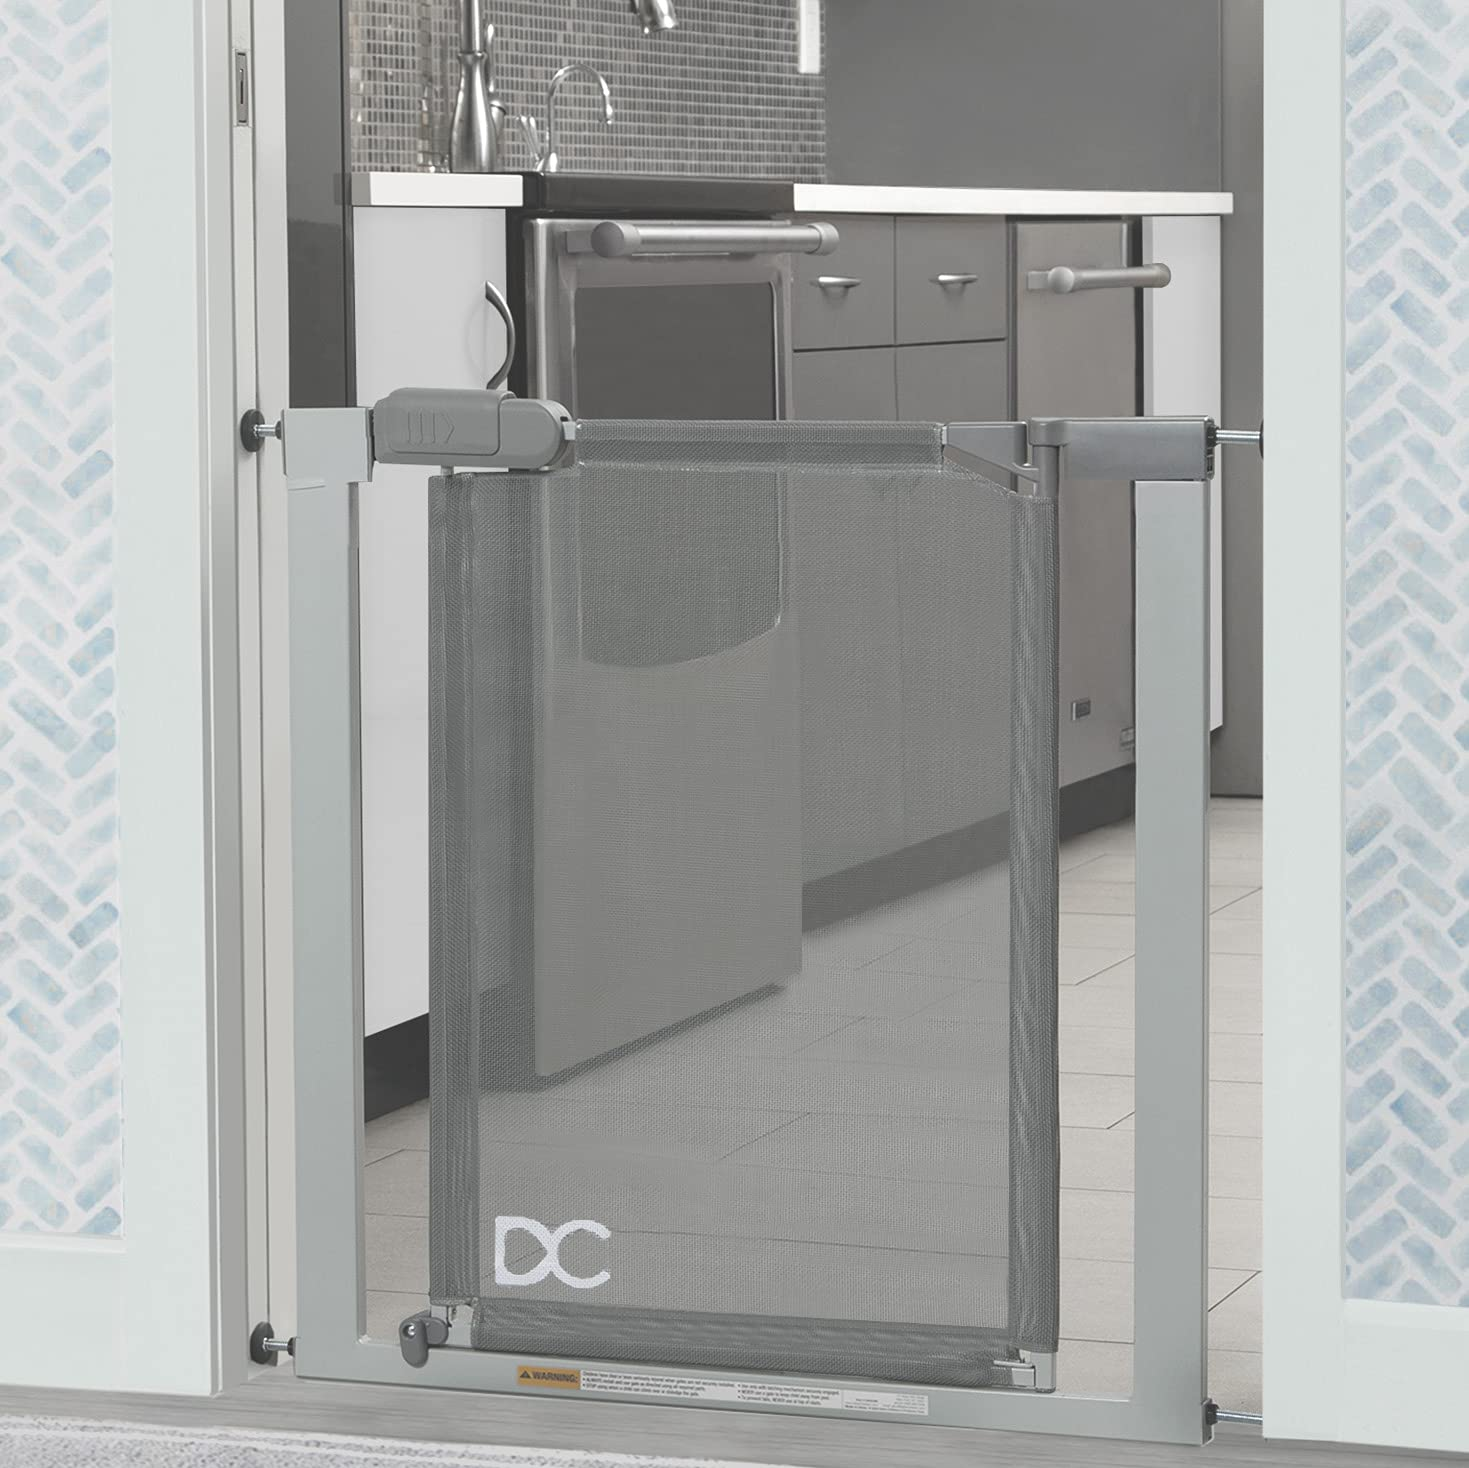 Delta Children 26.5-40 Inch Easy Install Pressure Mounted Baby and Pet Safety Gate with Walk Through Door - No Drilling, No Tools Required [Includes Wall Protectors/Extenders], Grey